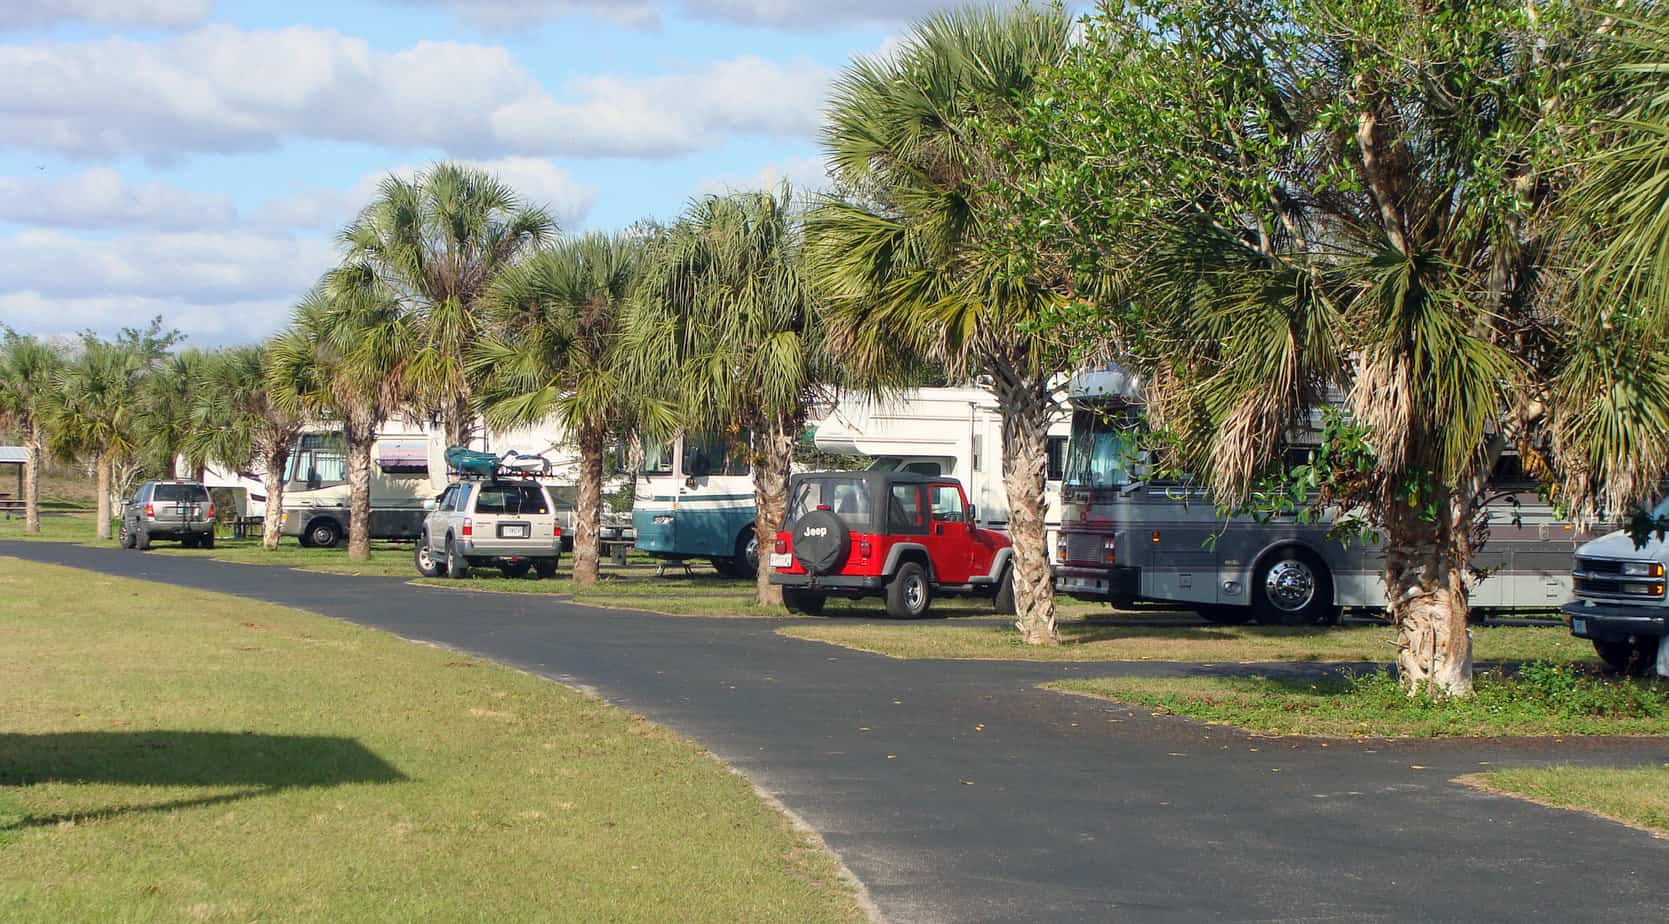 Camping In Florida S Everglades Tips For Rv Tent